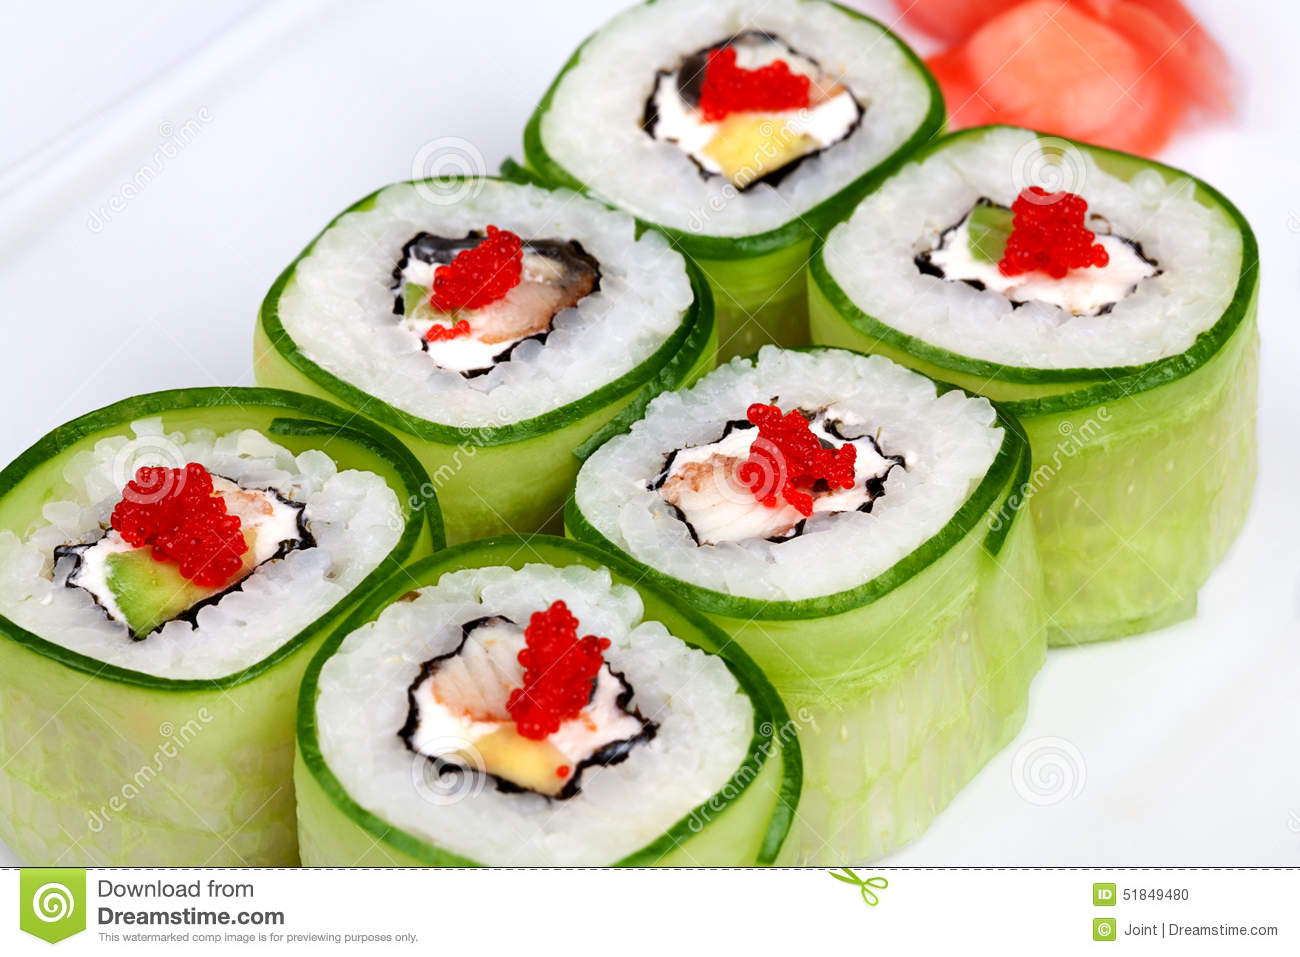 Sushi Roll With Avocado, Cucumber And Caviar Stock Photo - Image ...